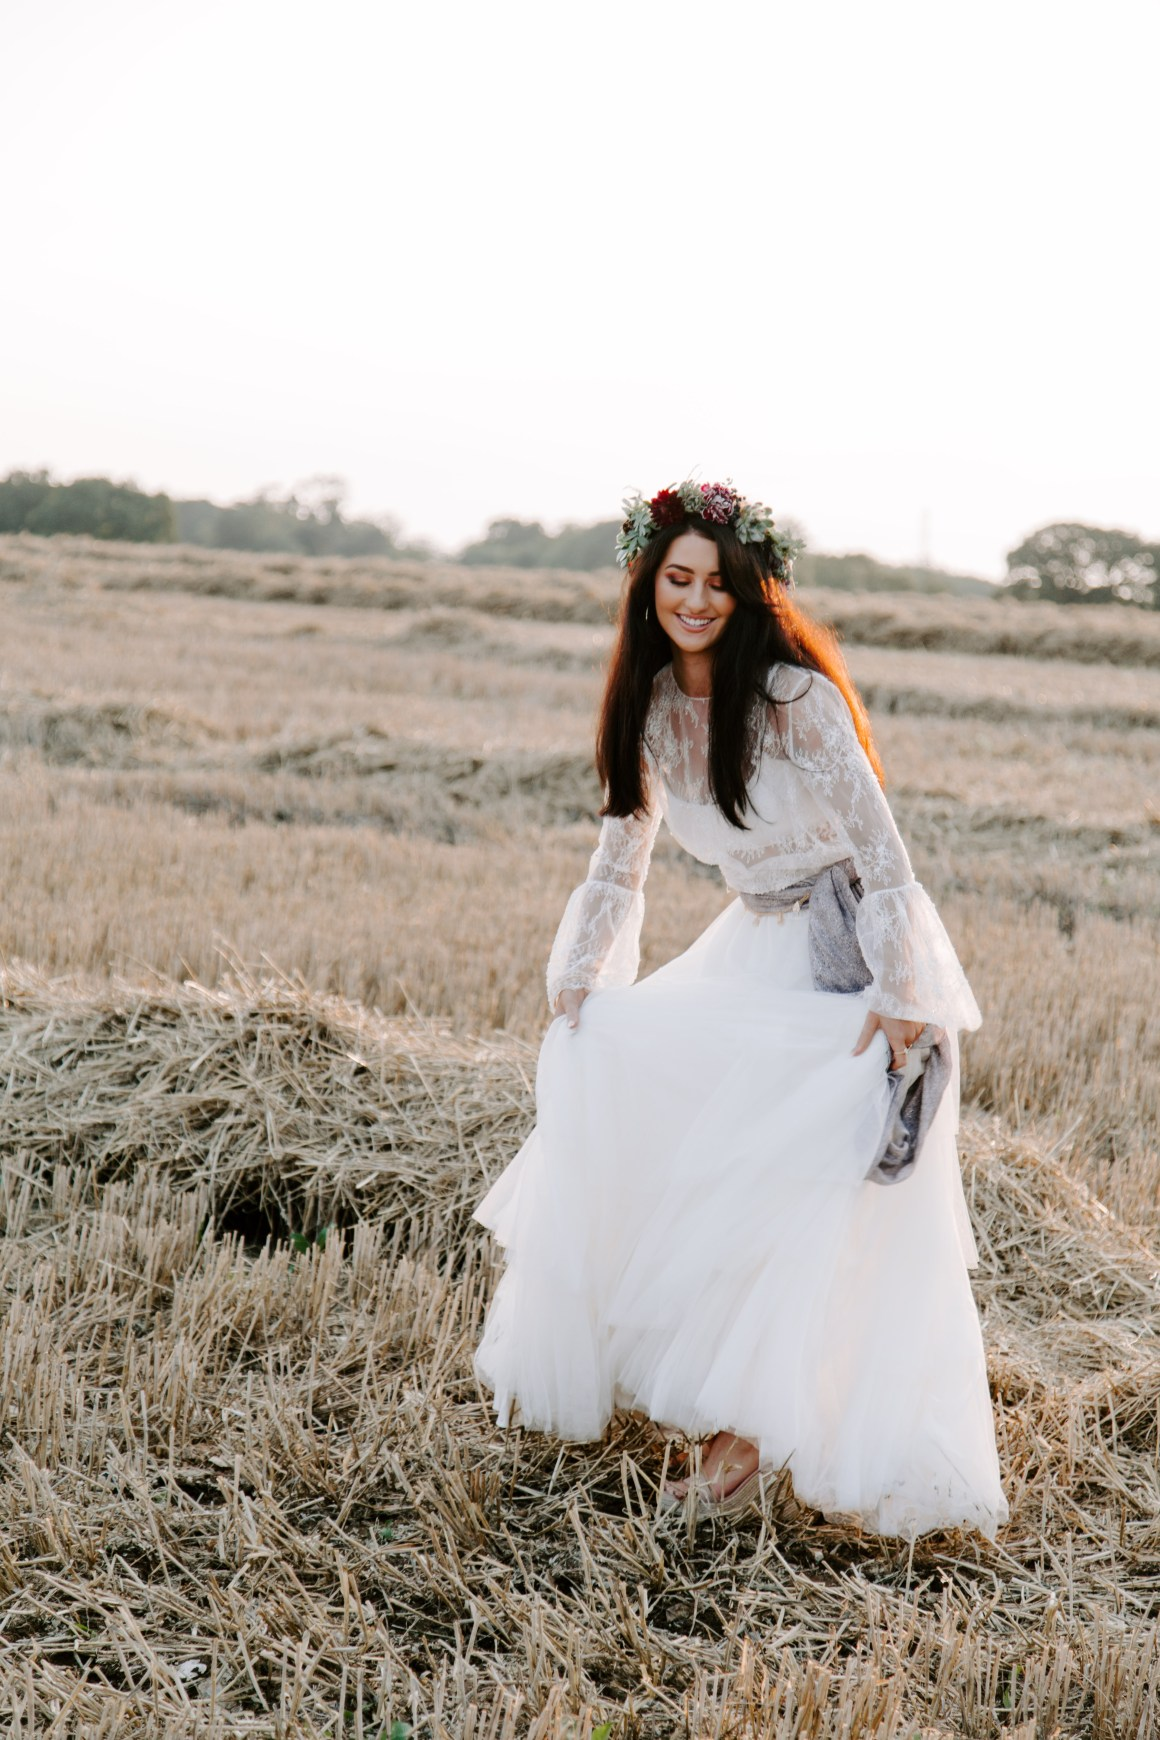 Bohemian bride at sunset wearing floral crown